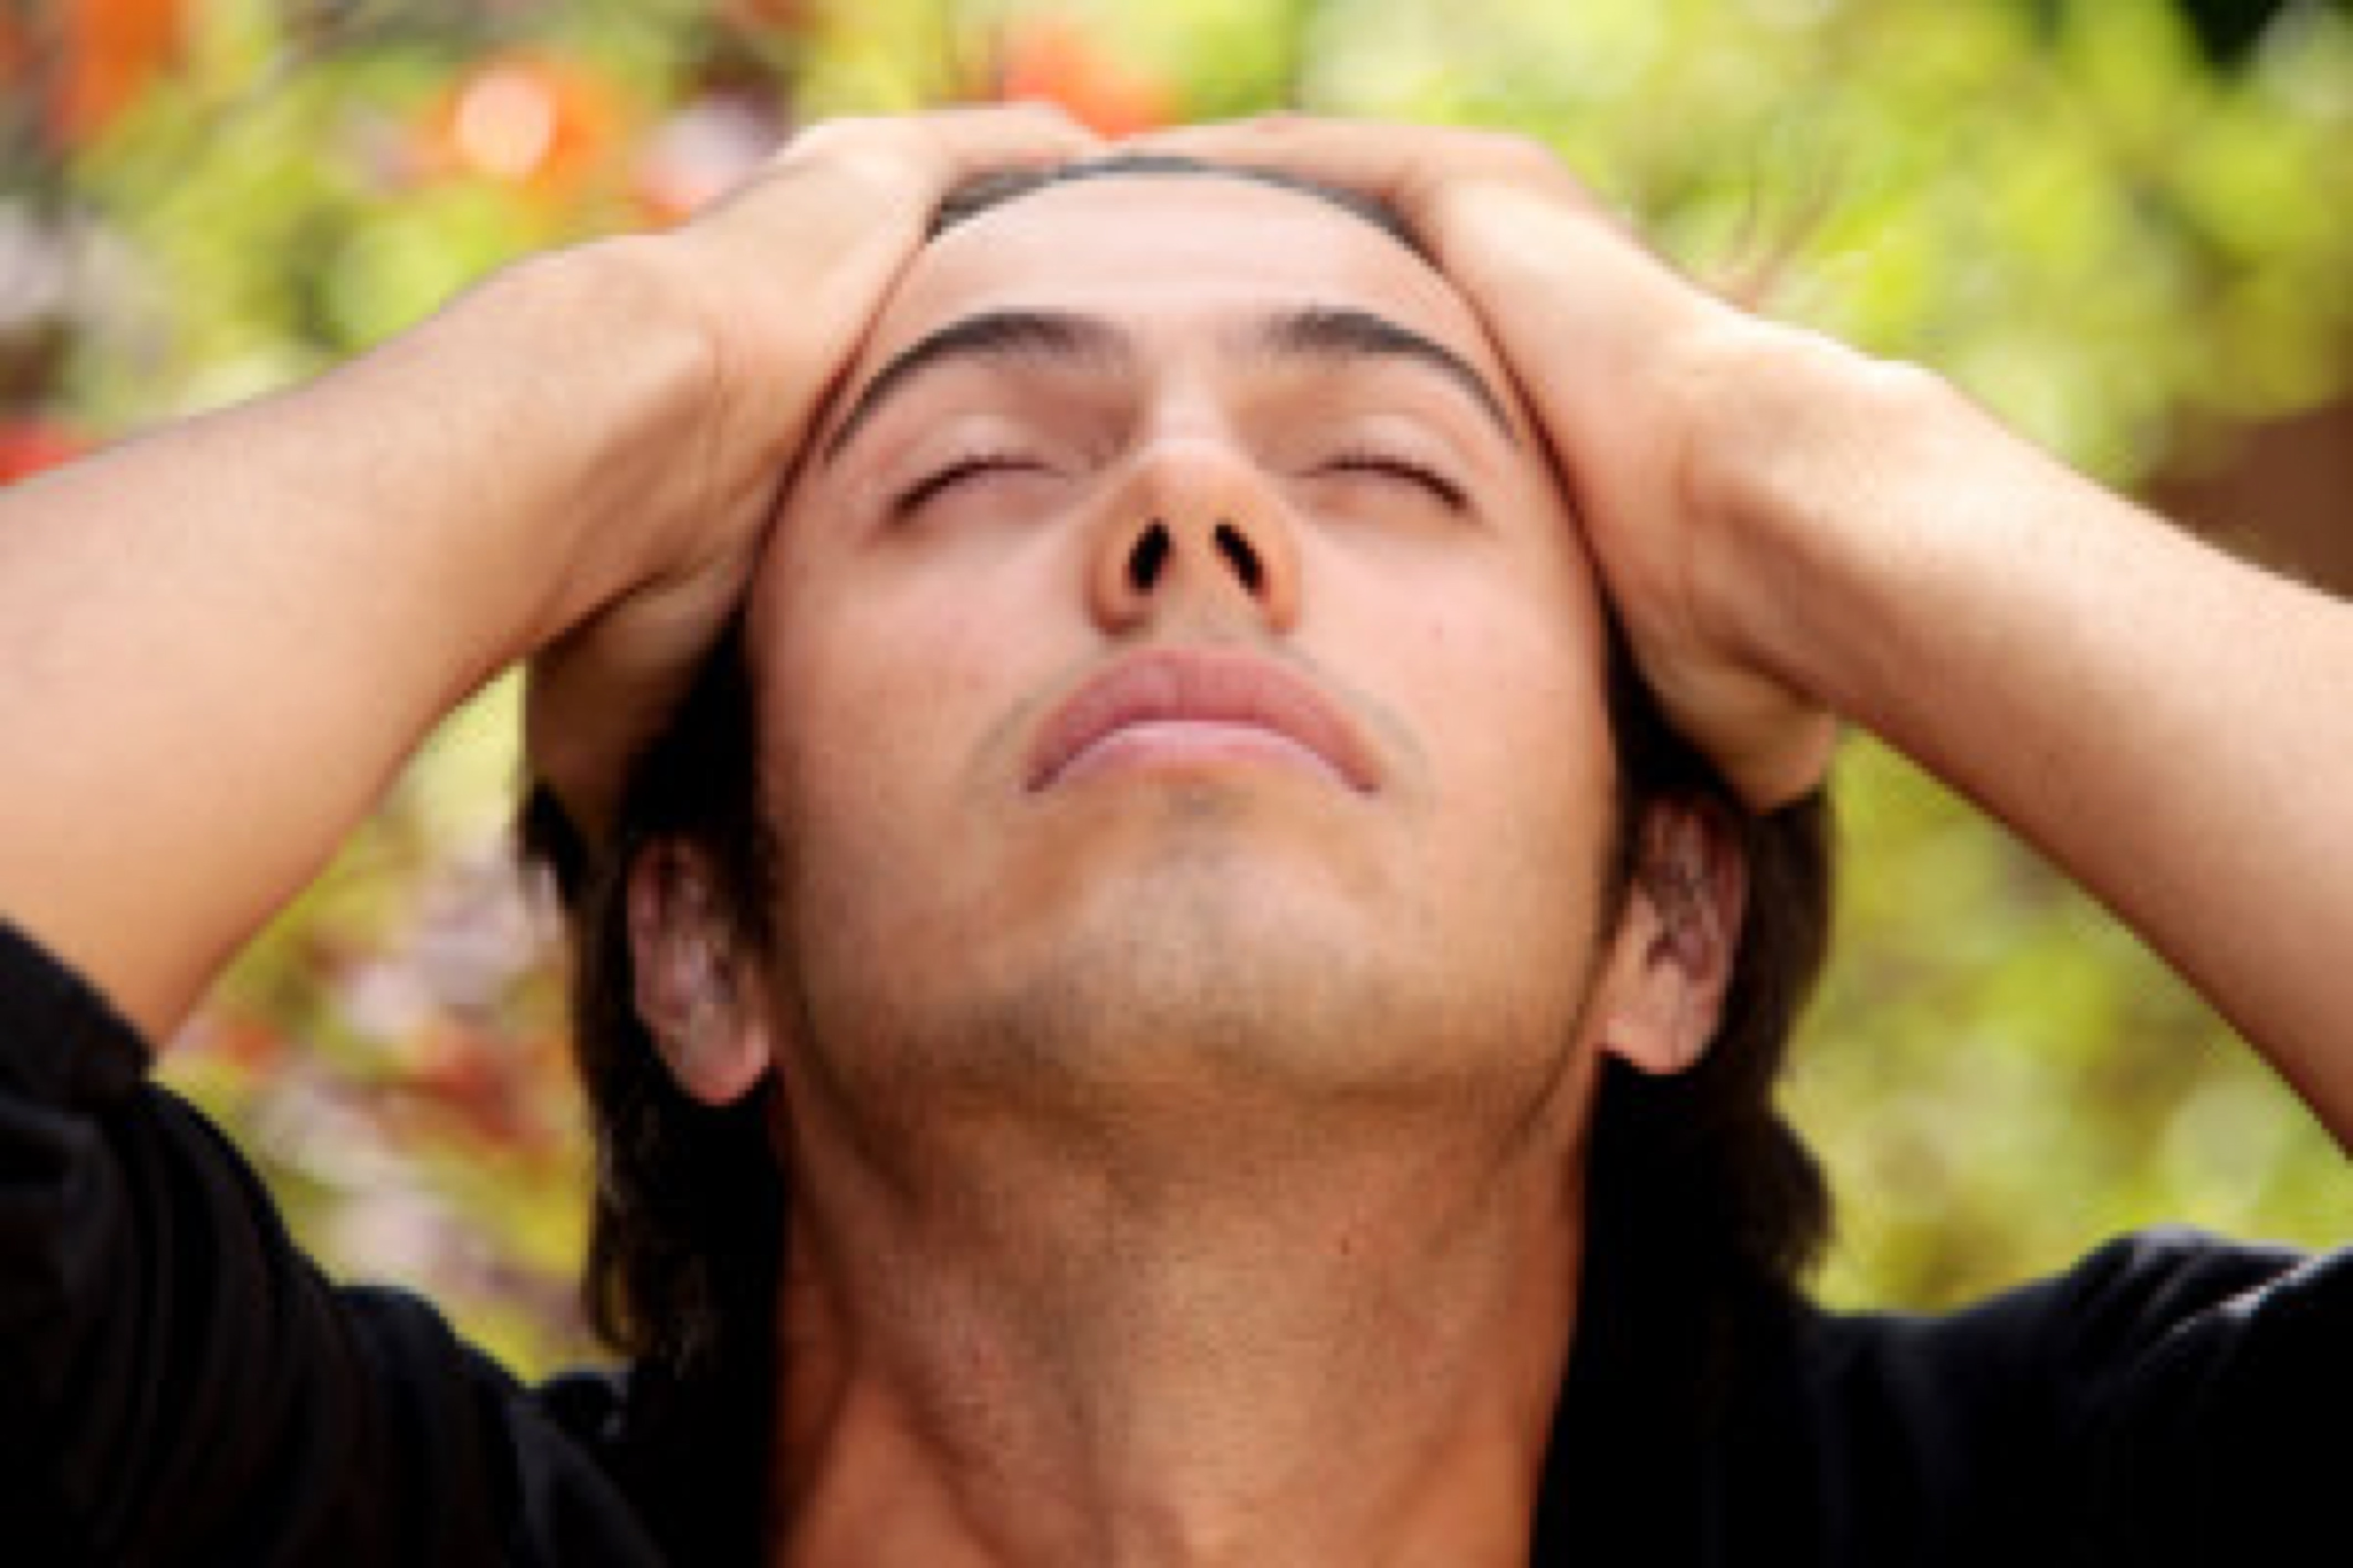 Stressed Young Man. Model Released